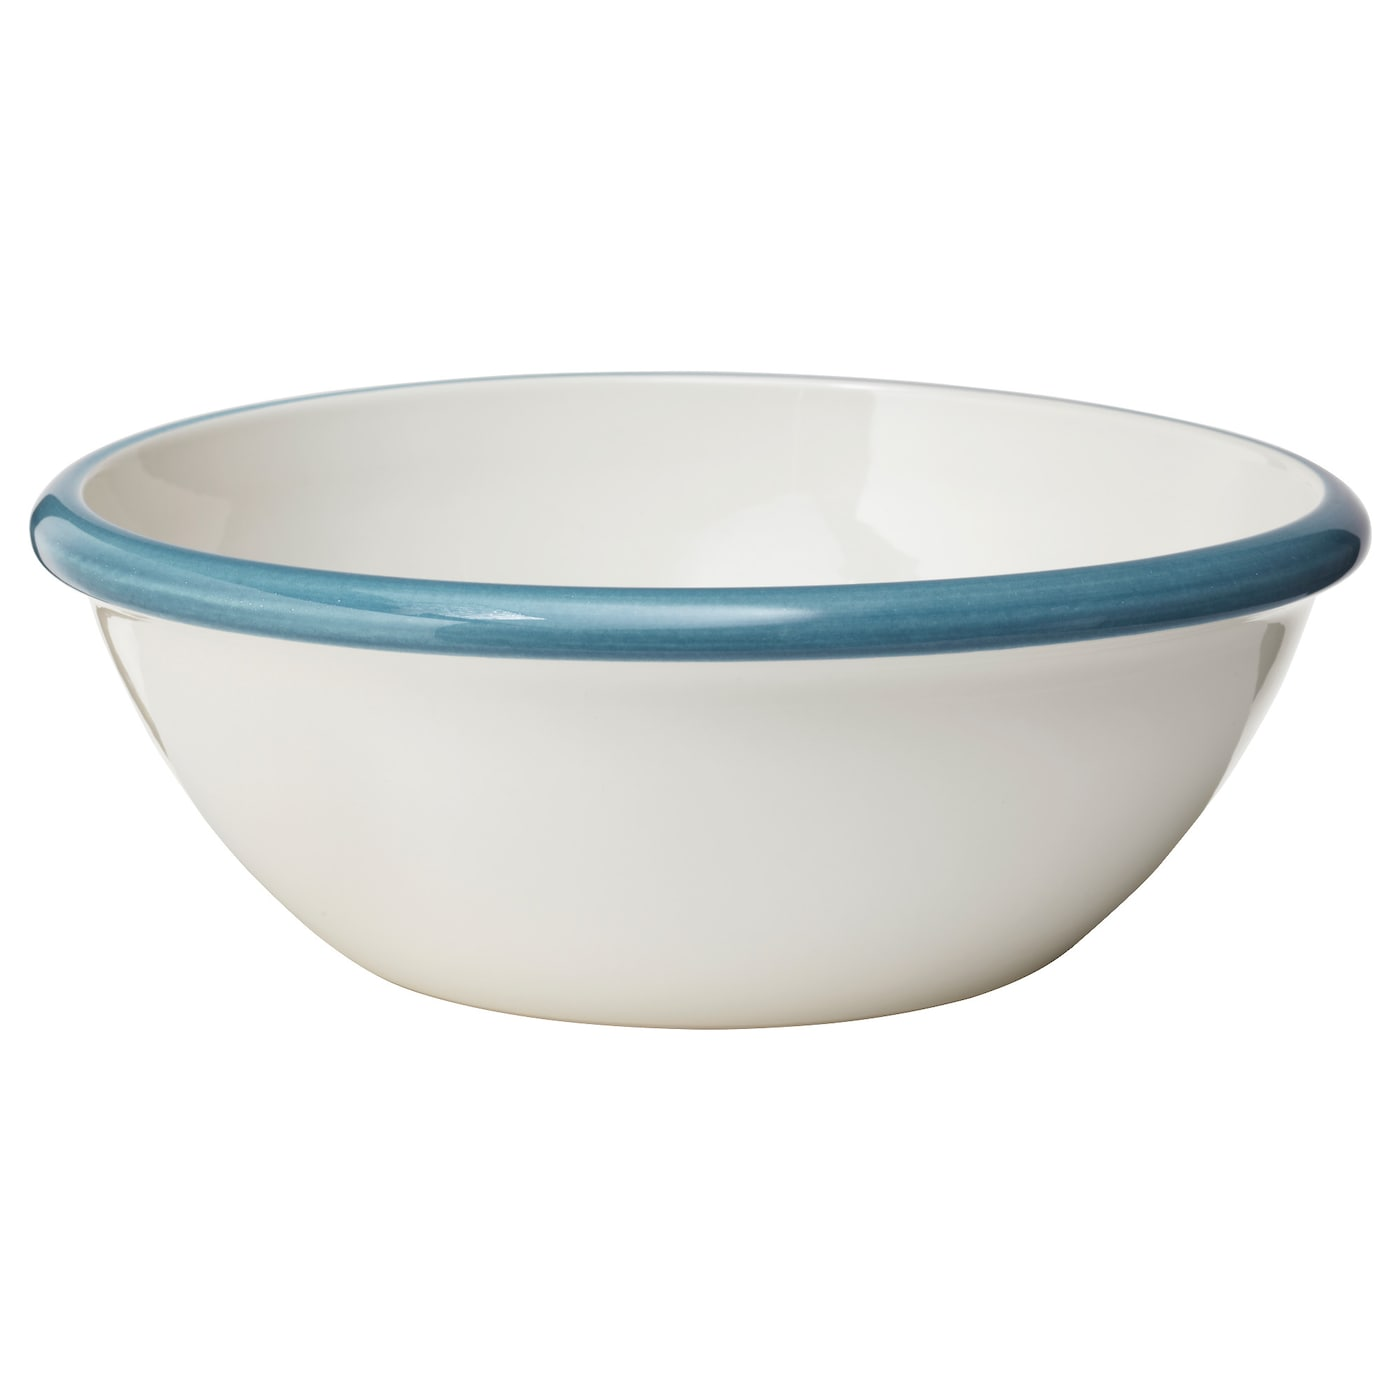 IKEA FINSTILT serving bowl Perfect for bread, a large salad or as a decorative fruit bowl.